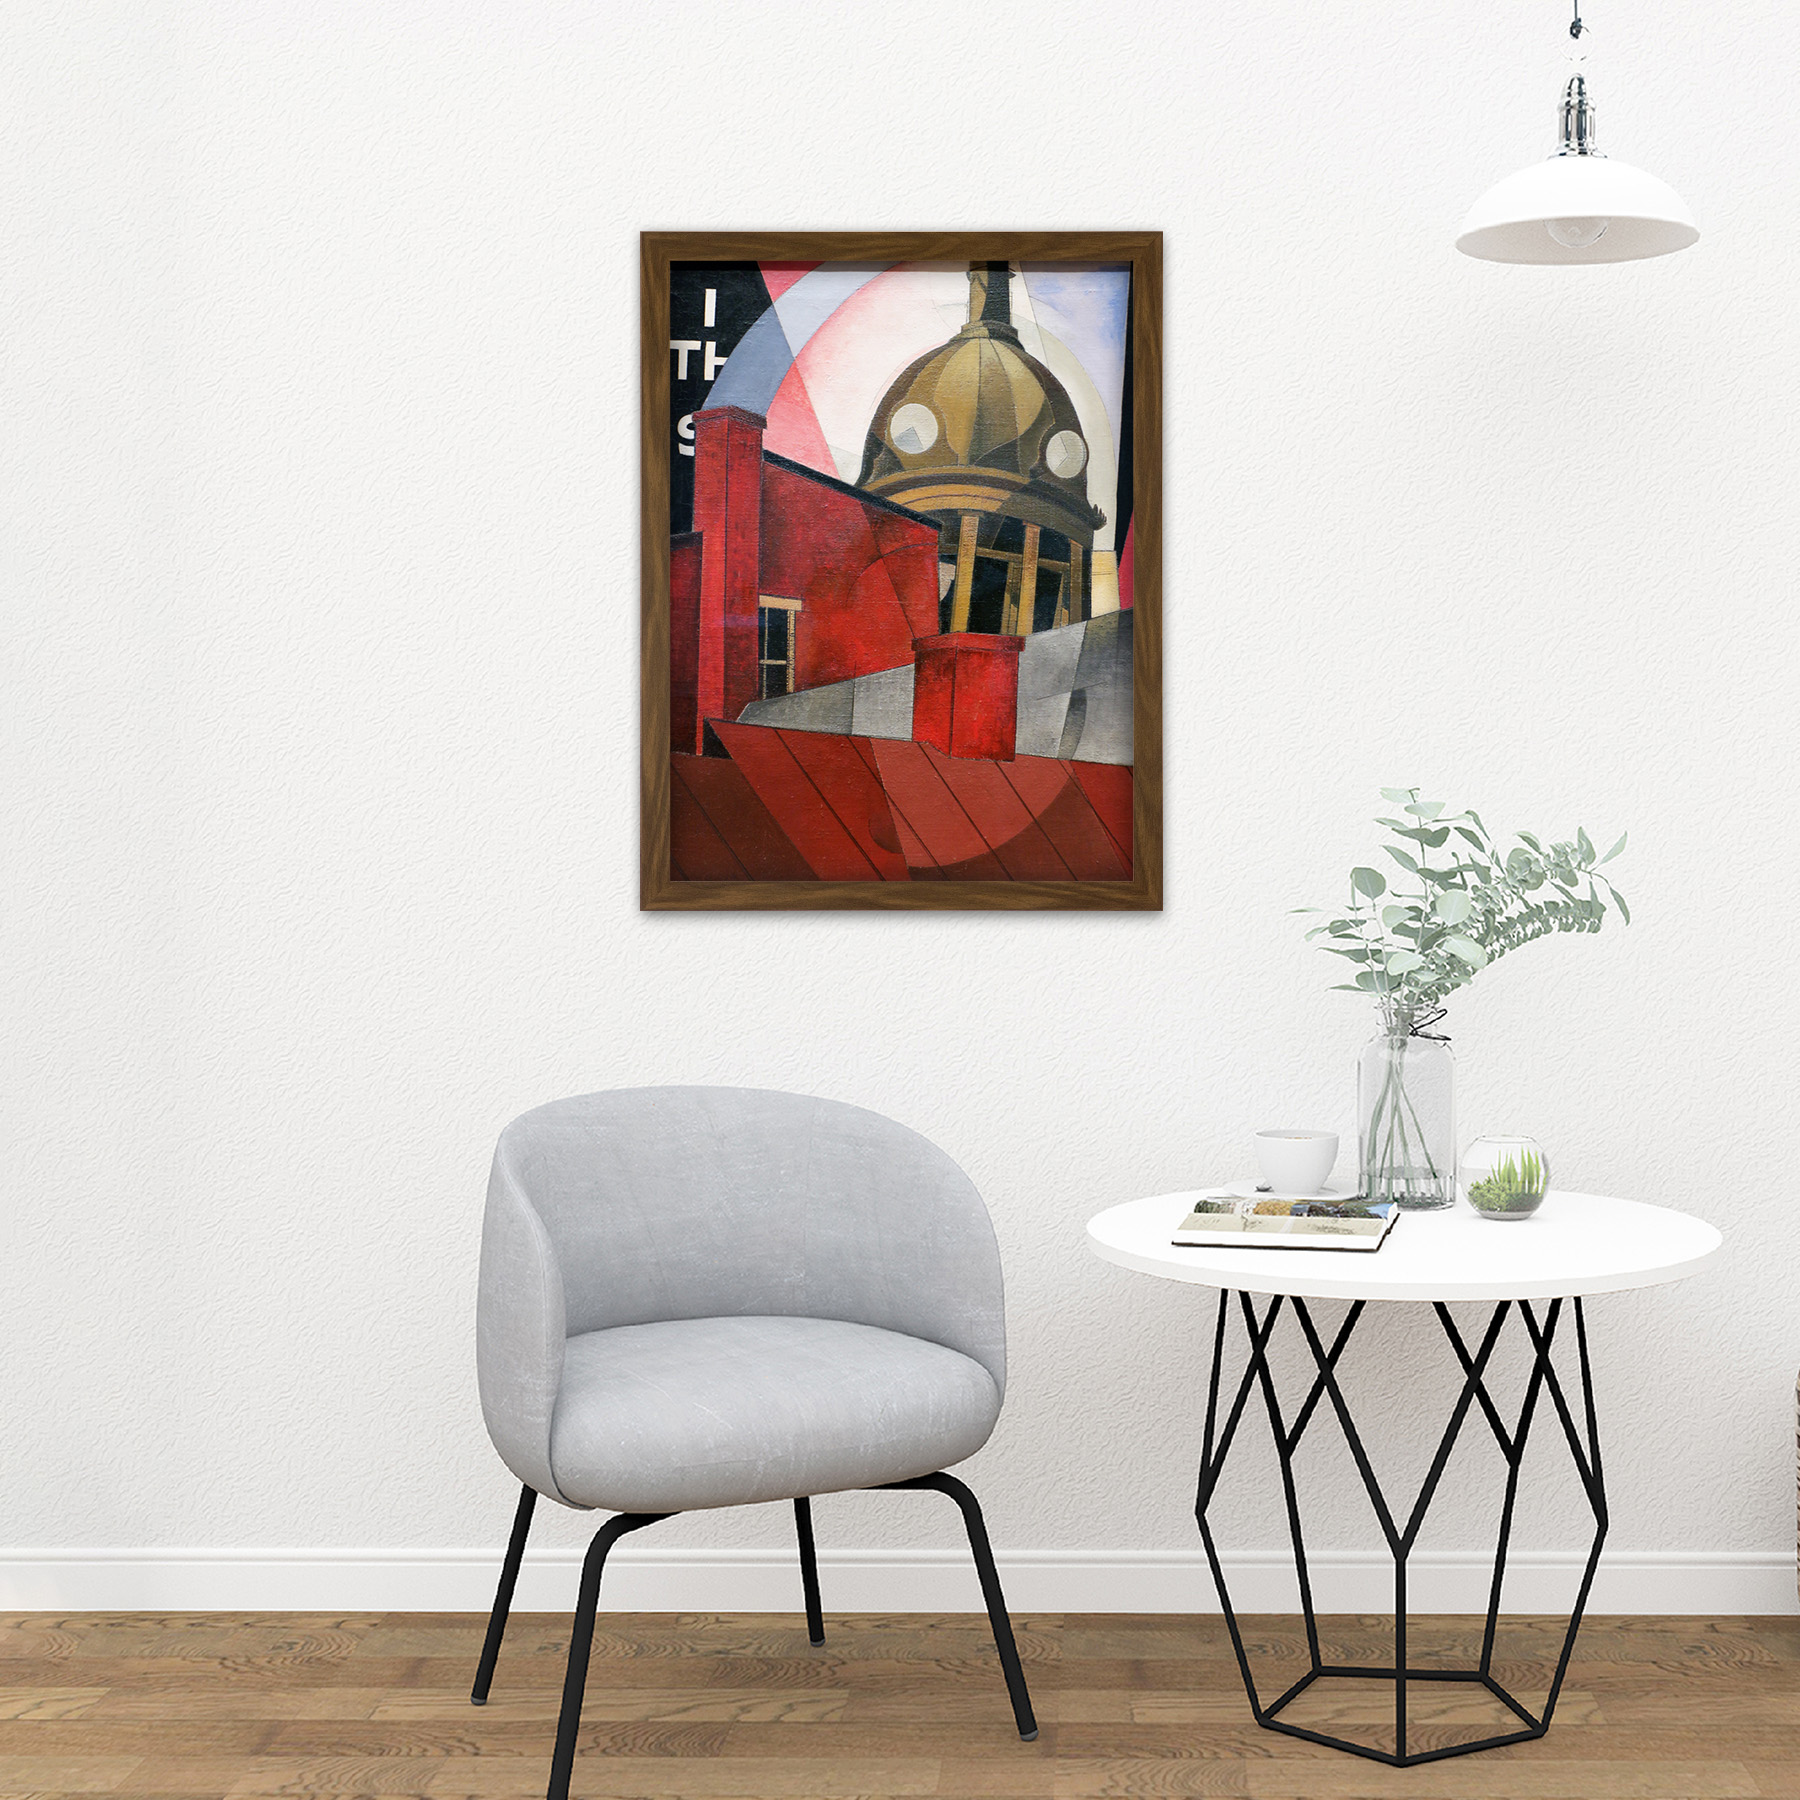 Demuth-Welcome-City-Red-Tower-Painting-Large-Framed-Art-Print thumbnail 13